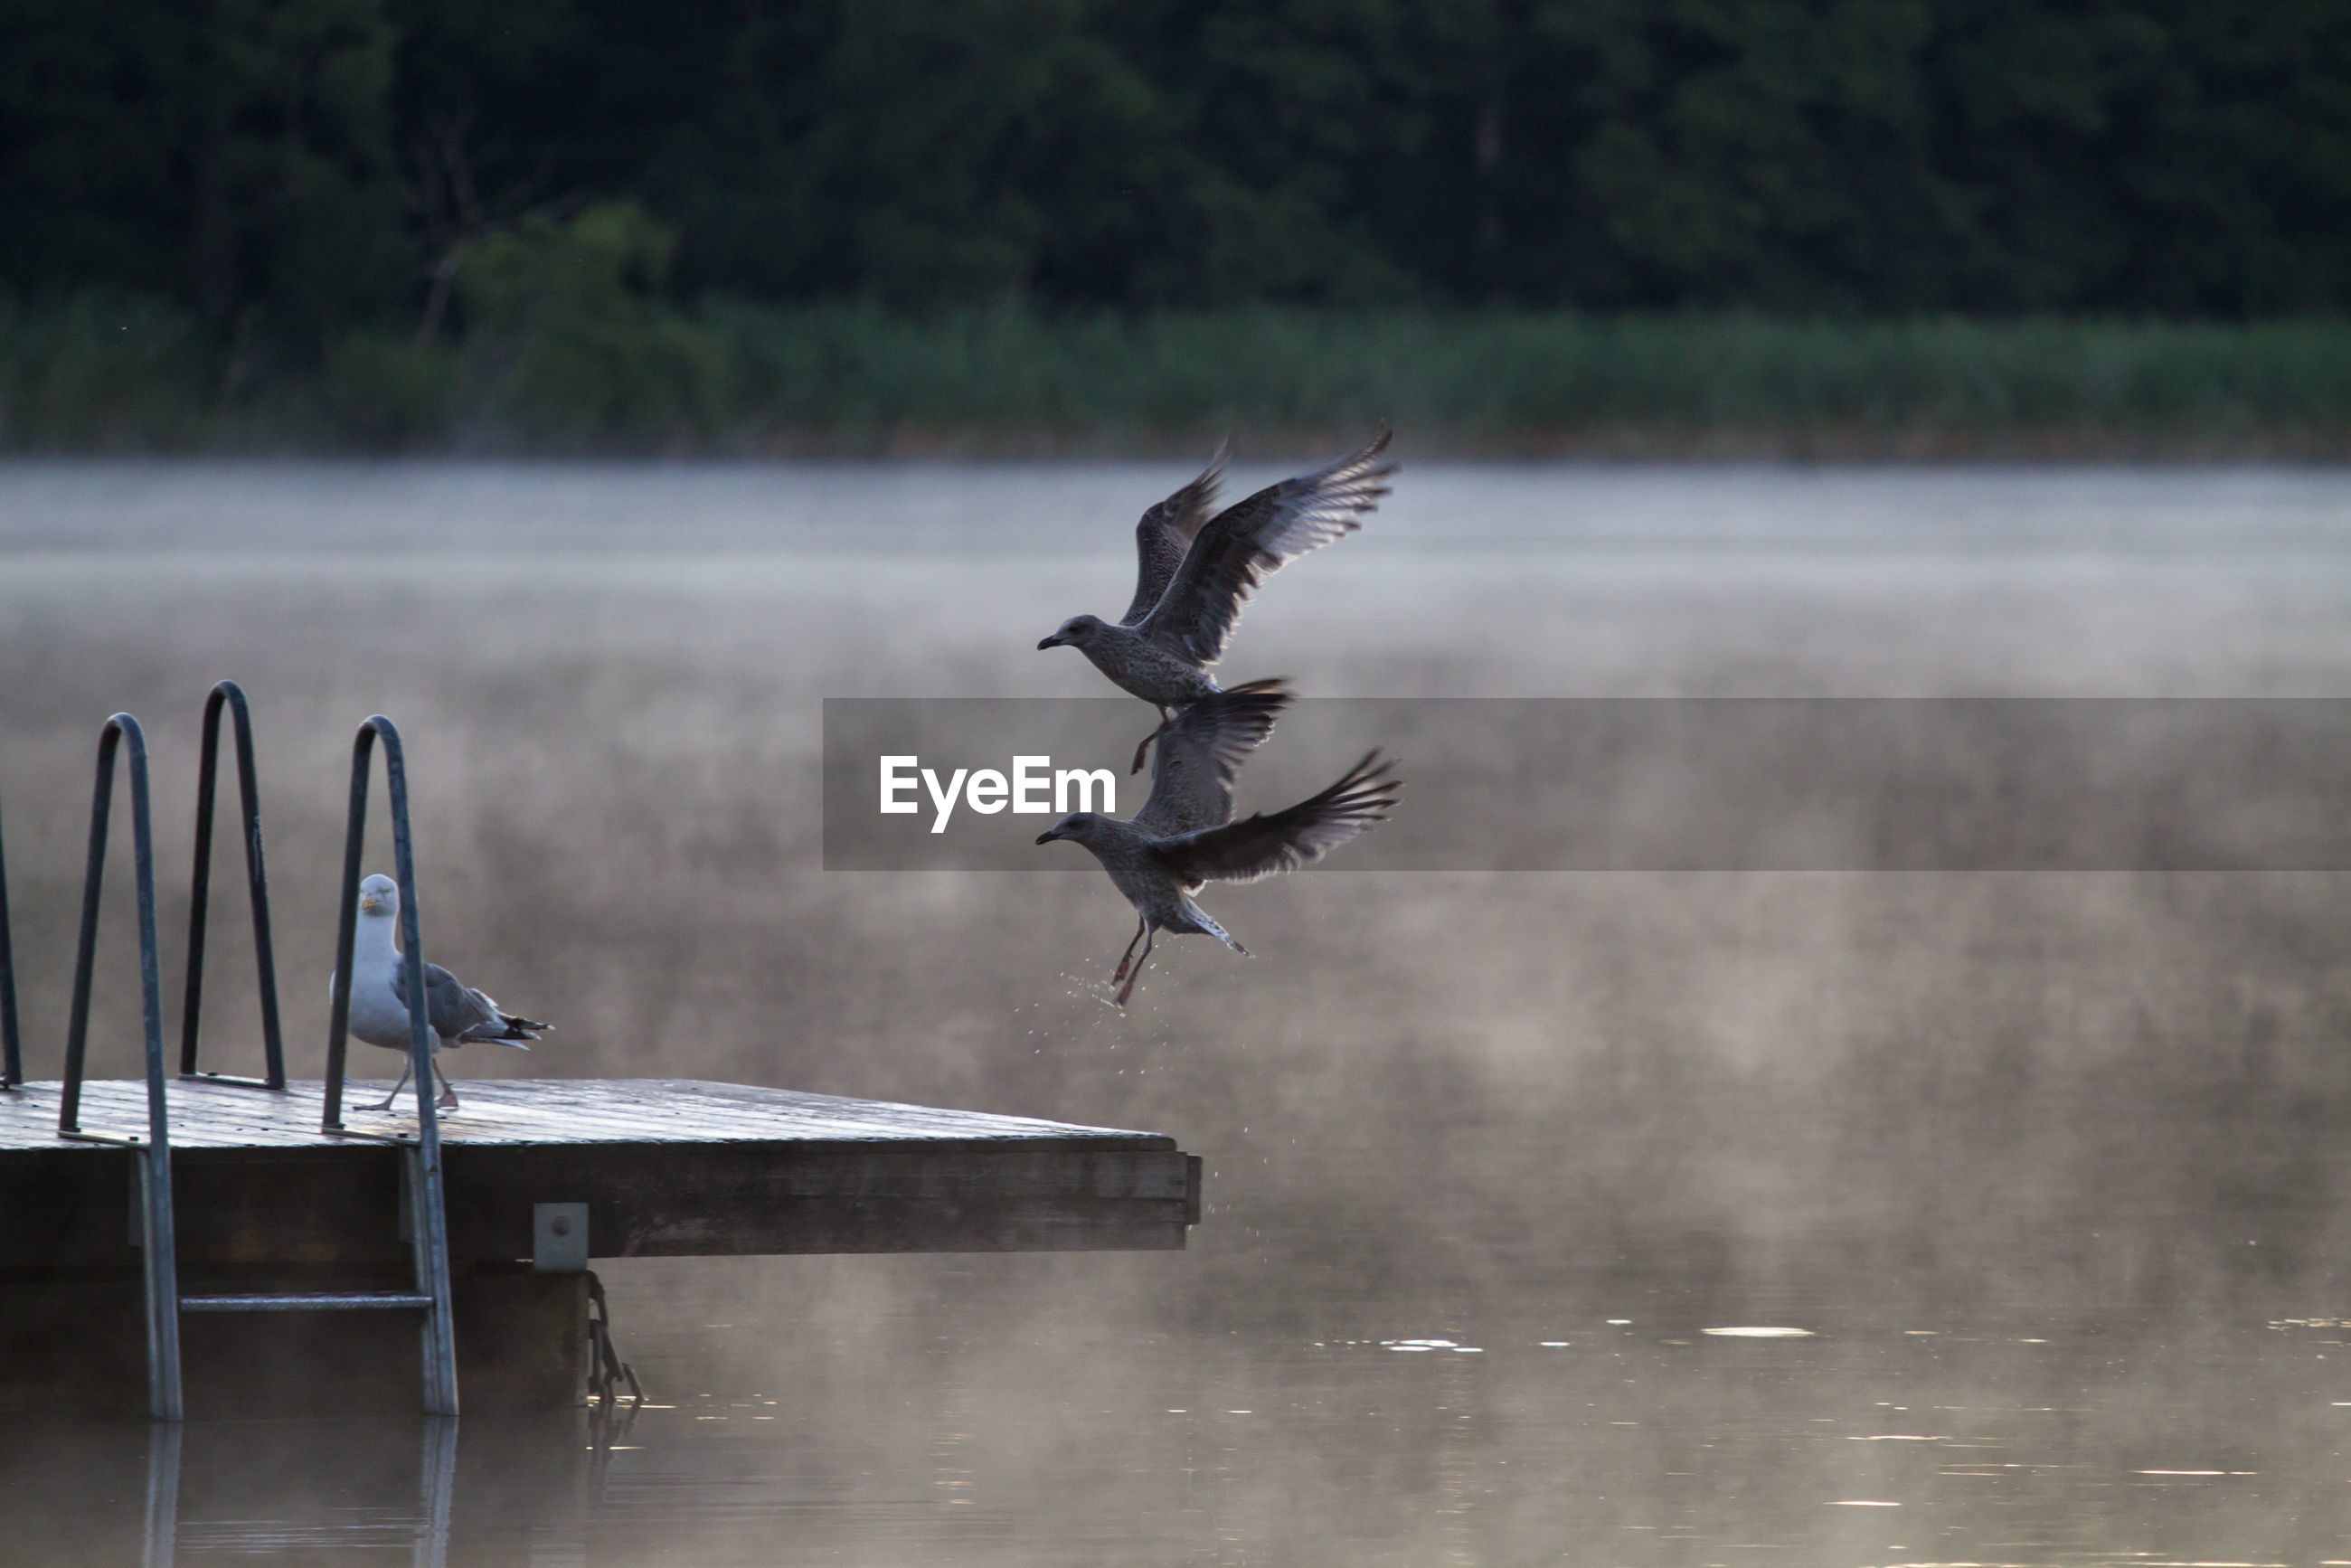 Seagulls landing on pier over lake during foggy weather